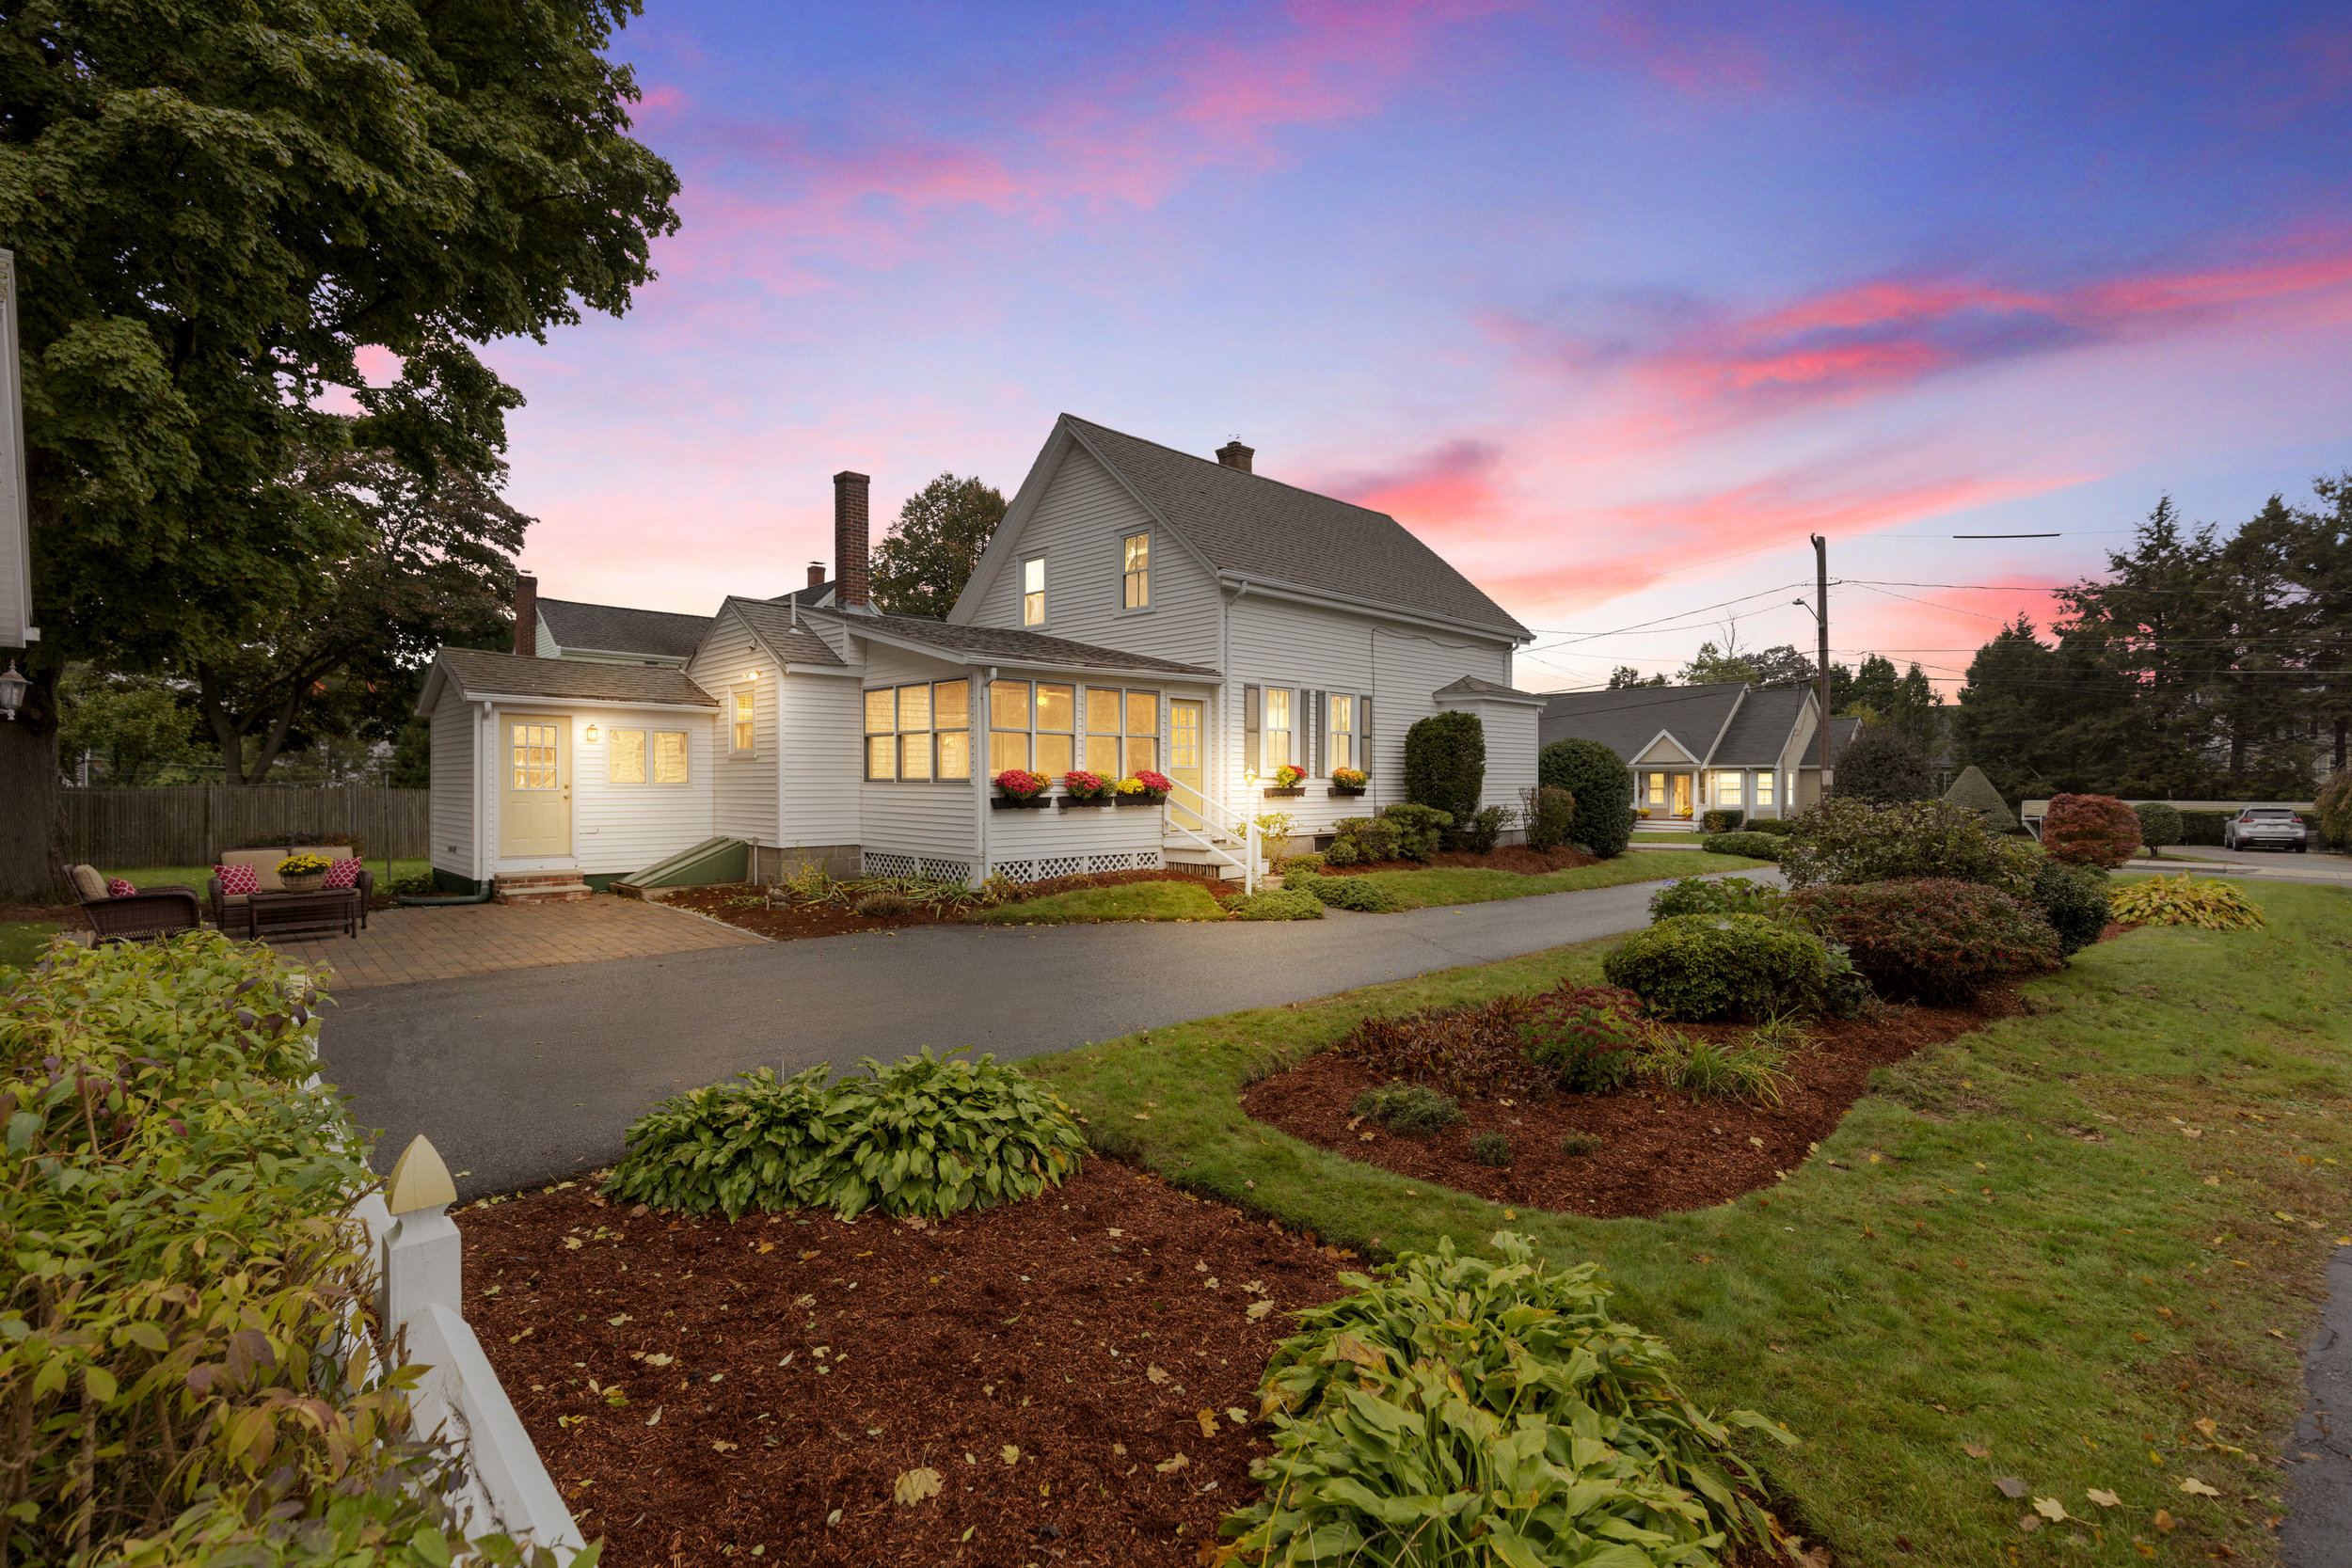 Dramatic Twilight Photos   Perfect for showcasing the beauty of a home with great landscaping, scenery, or exterior finishes, these photo sessions take place during civil twilight. Clients receive between 3 and 7 additional images from this special session.